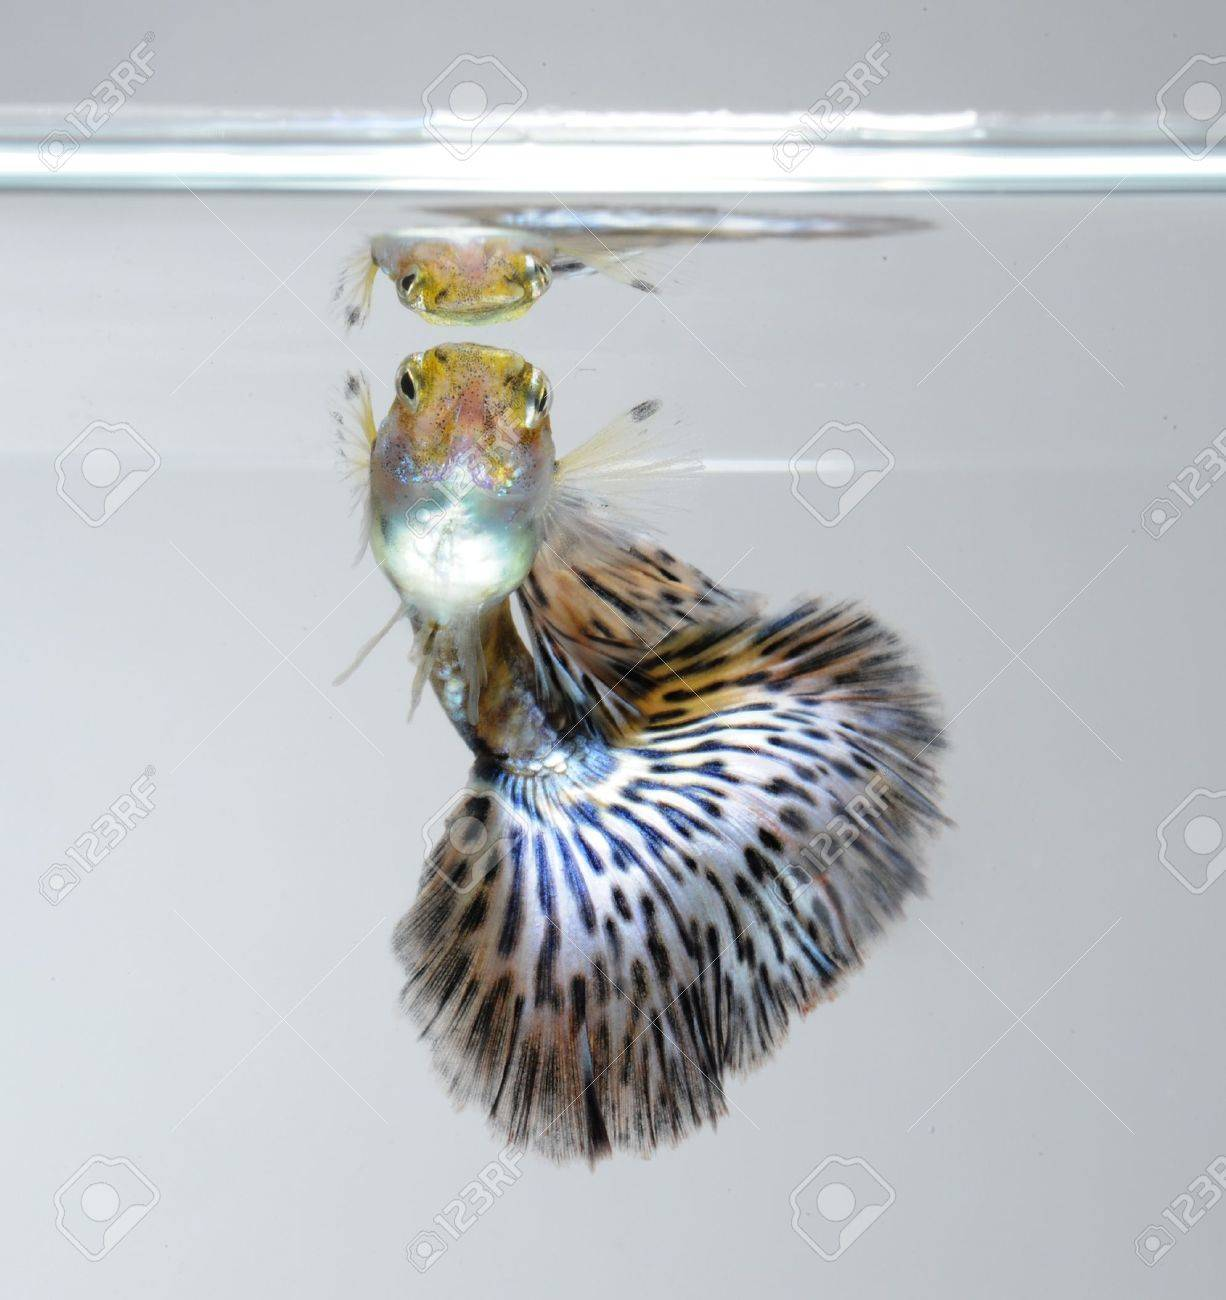 guppy pet fish Stock Photo - 11935216